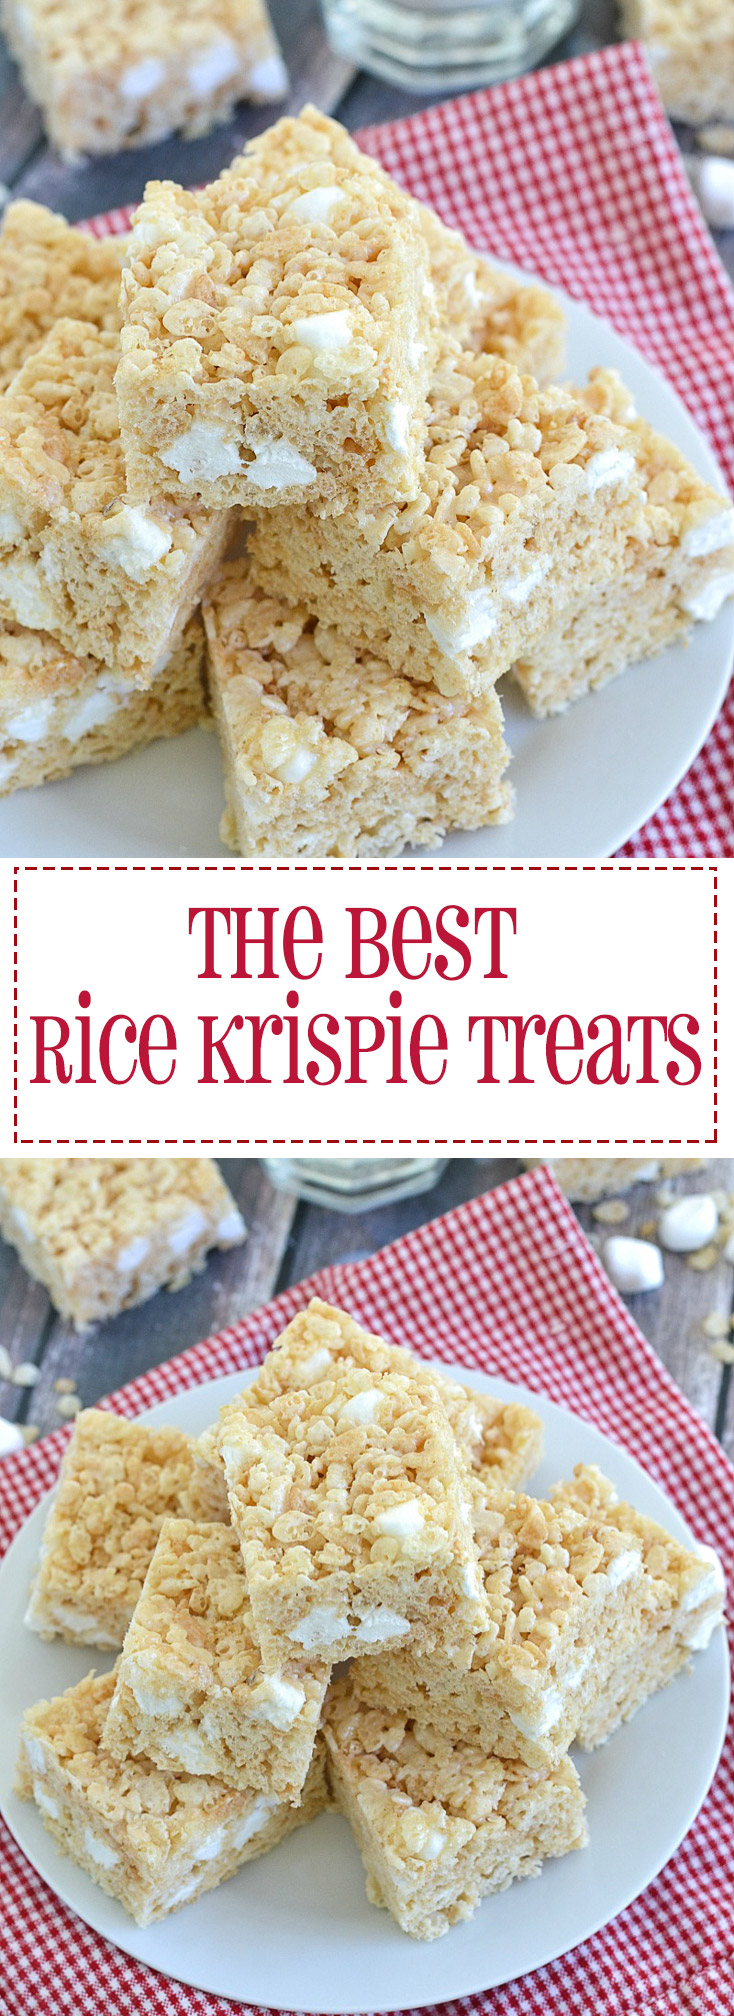 Soft, thick and chewy rice krispie treats. Seriously the best recipe! www.motherthyme.com